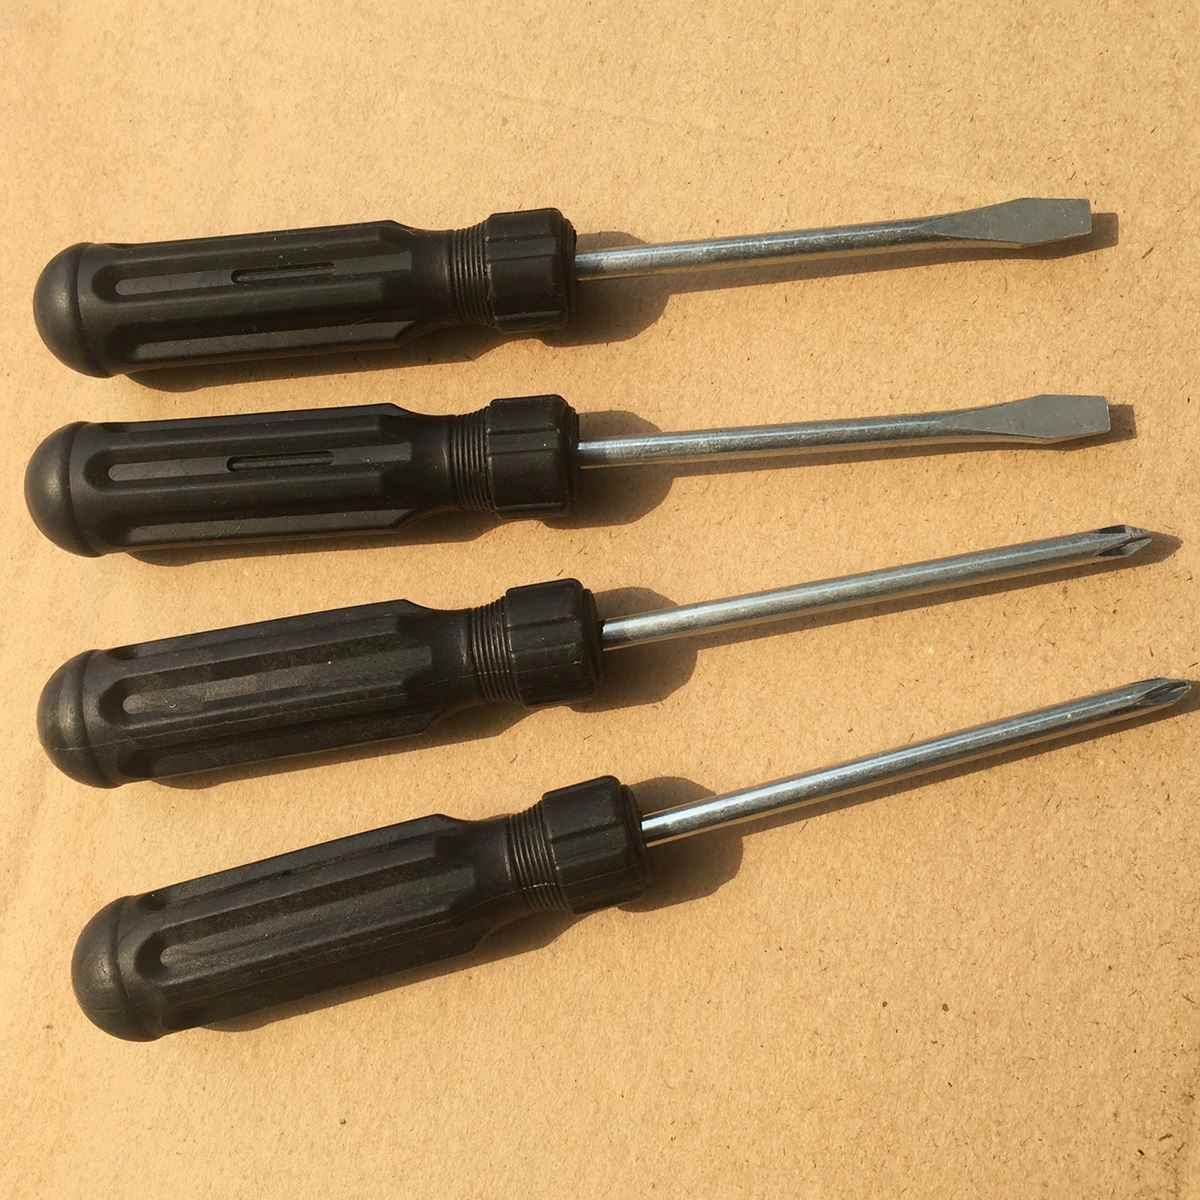 T Shape Screwdriver Multifunctional Hand Tool Screw Repairing Kit Set Tools For Digital LCD Counting Coin Piggy Bank Counter